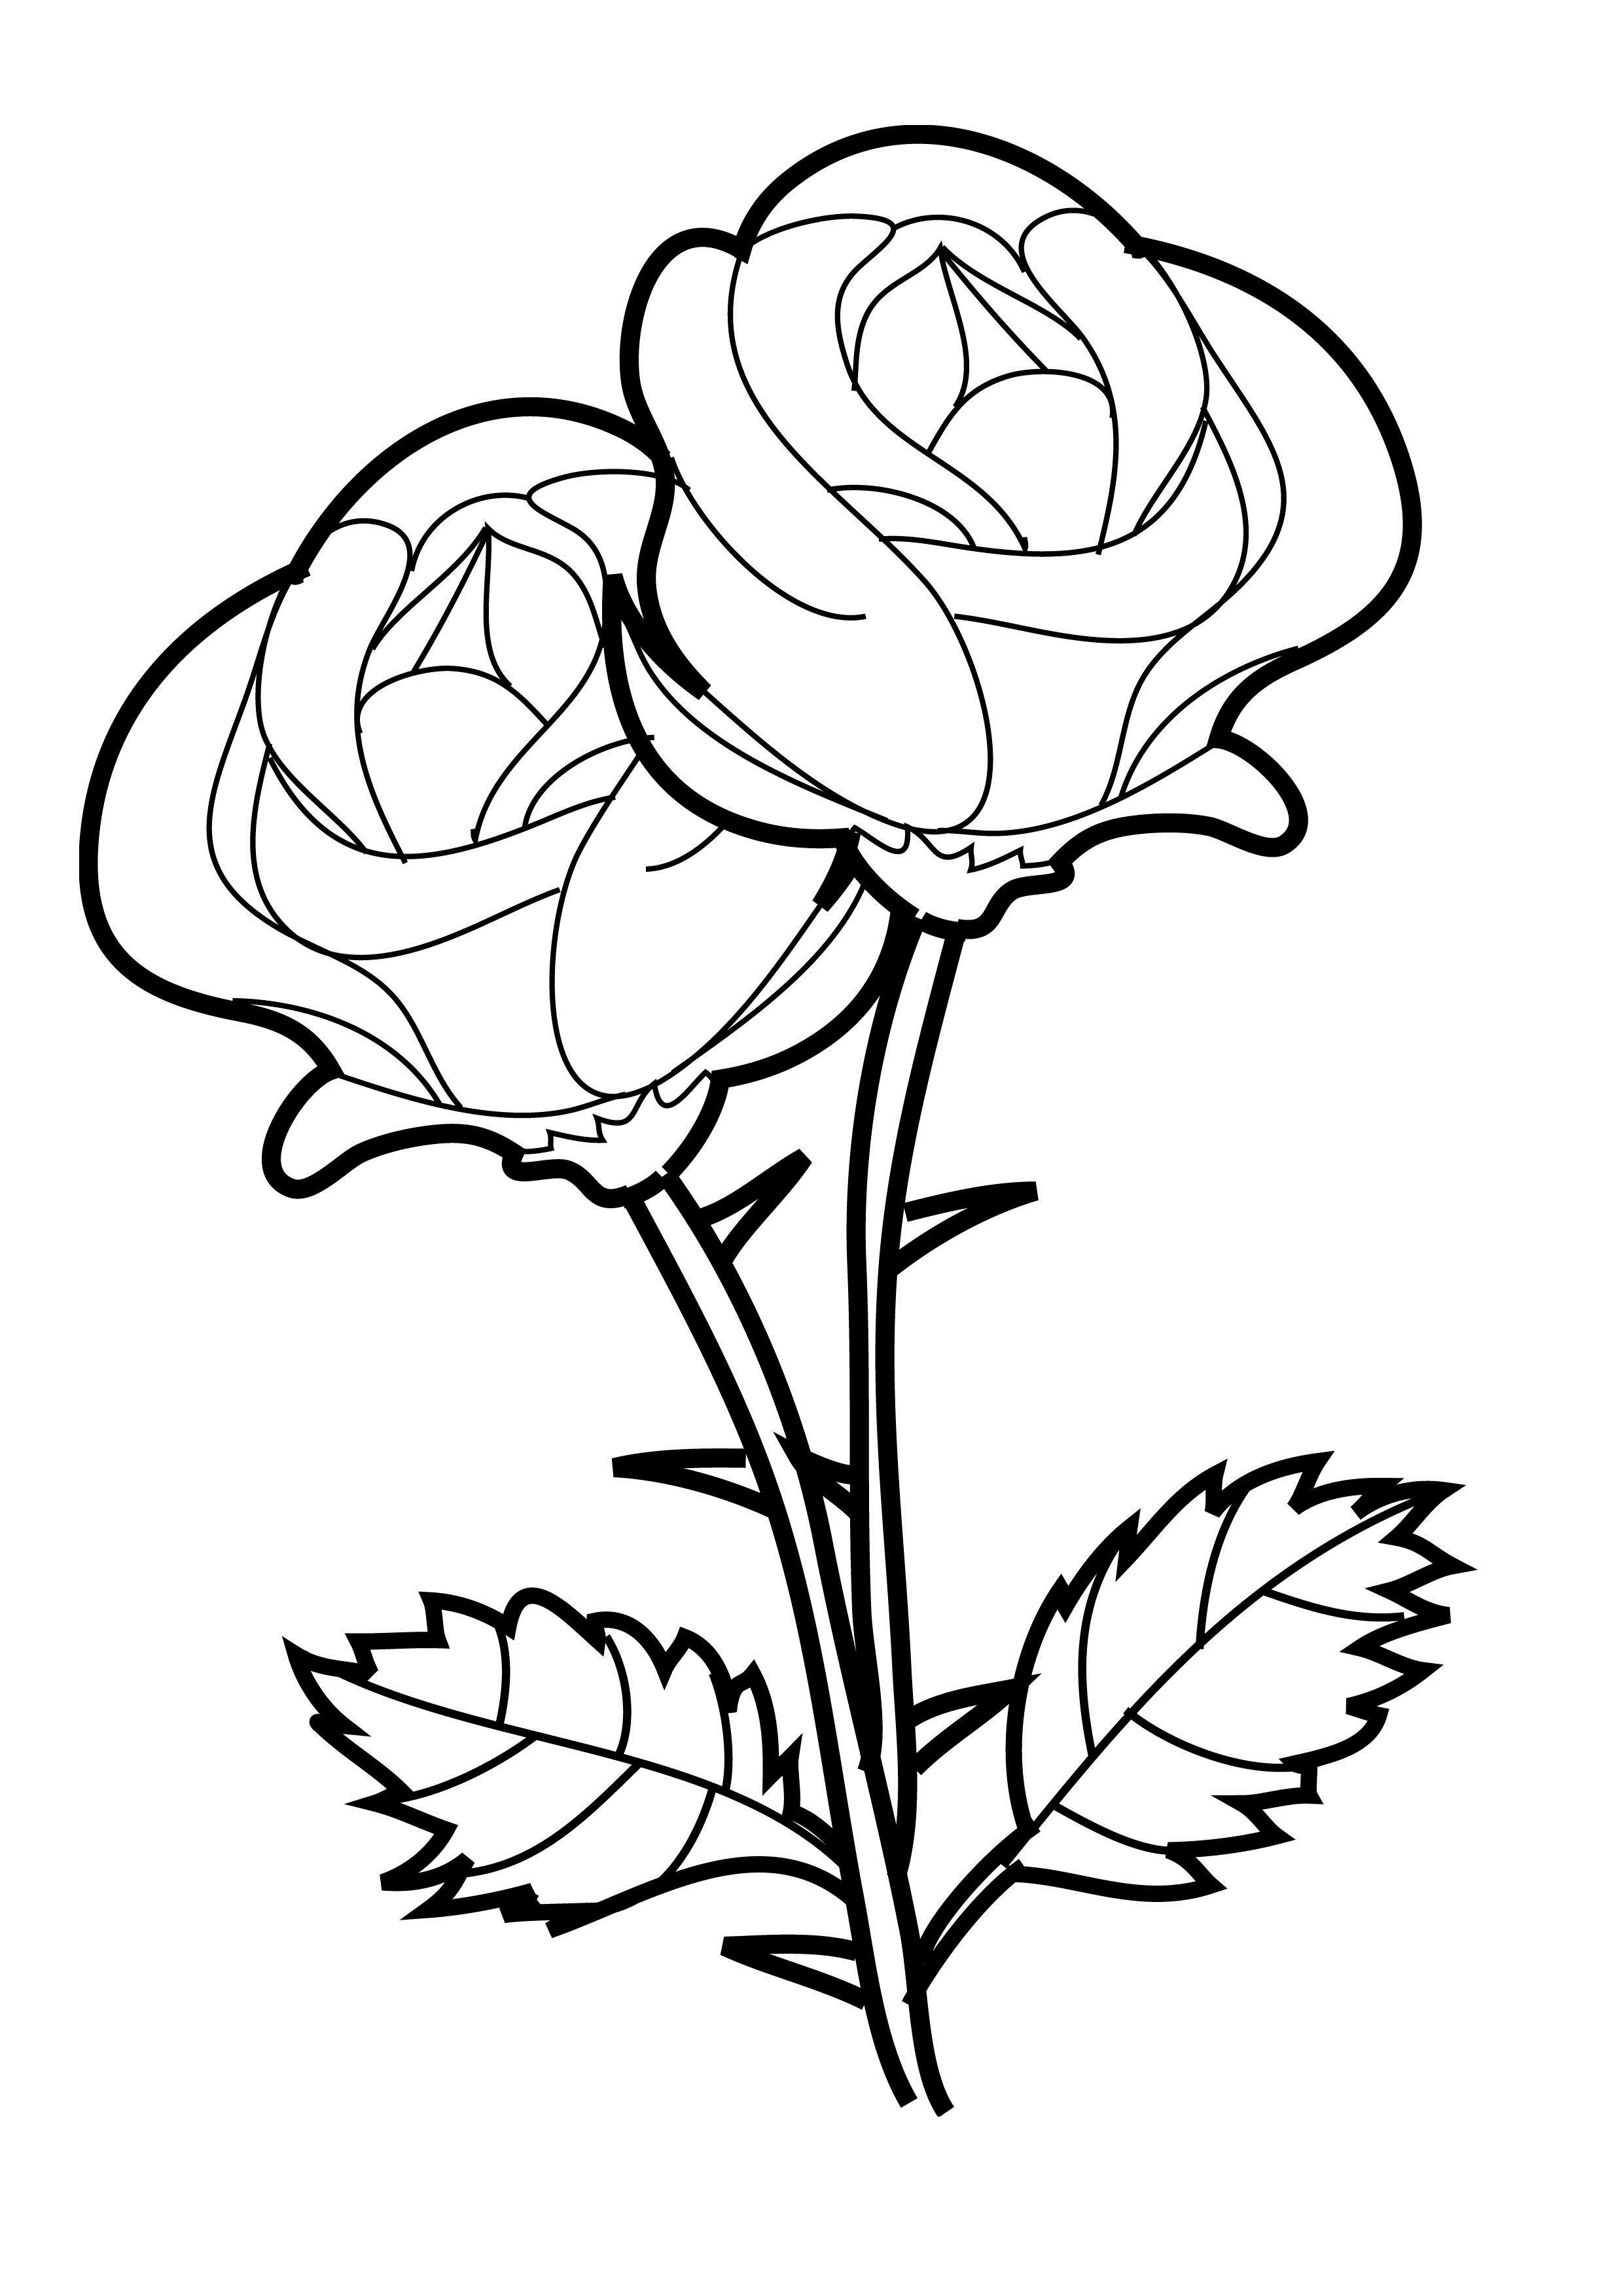 coloring pictures roses rose coloring page free printable coloring pages pictures roses coloring